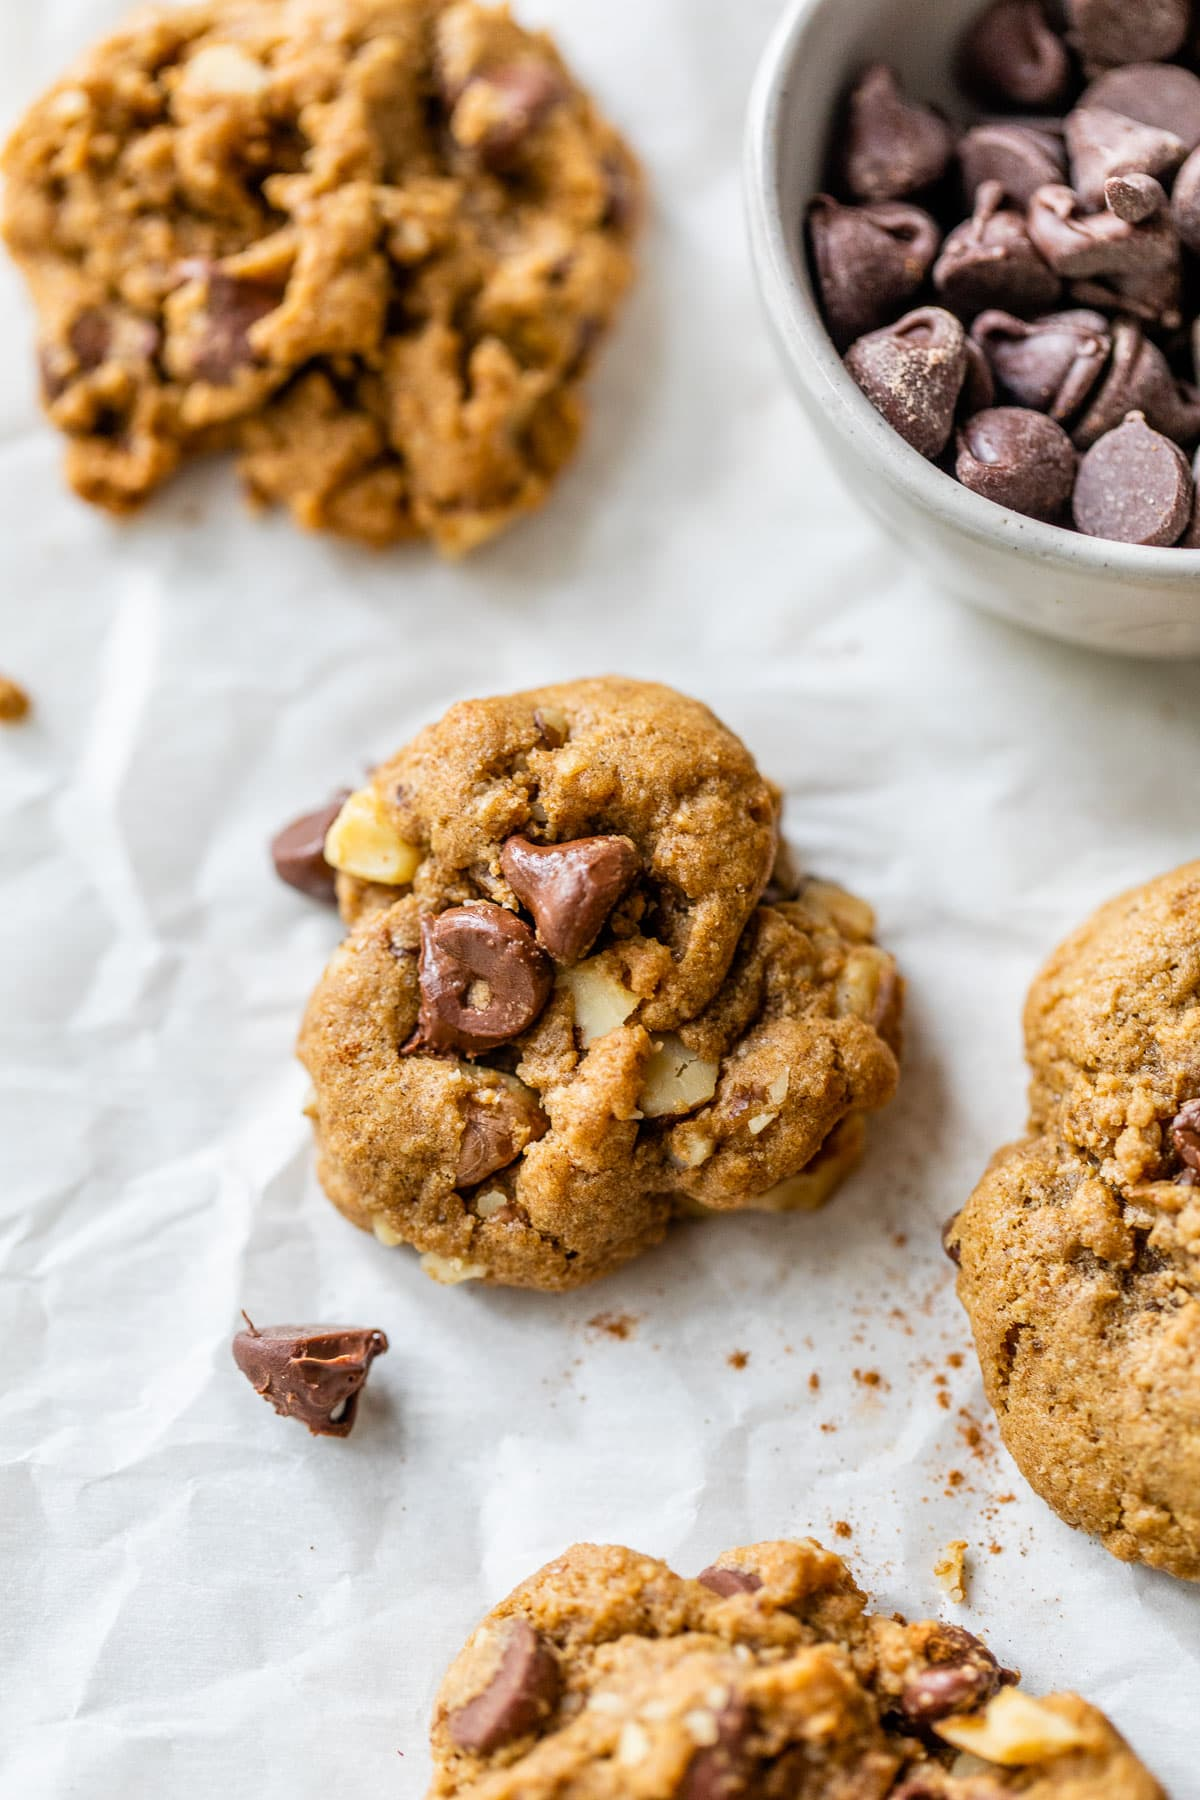 Whole Wheat Walnut Chocolate Chip Cookies. My PERFECT chocolate chip cookie recipe.